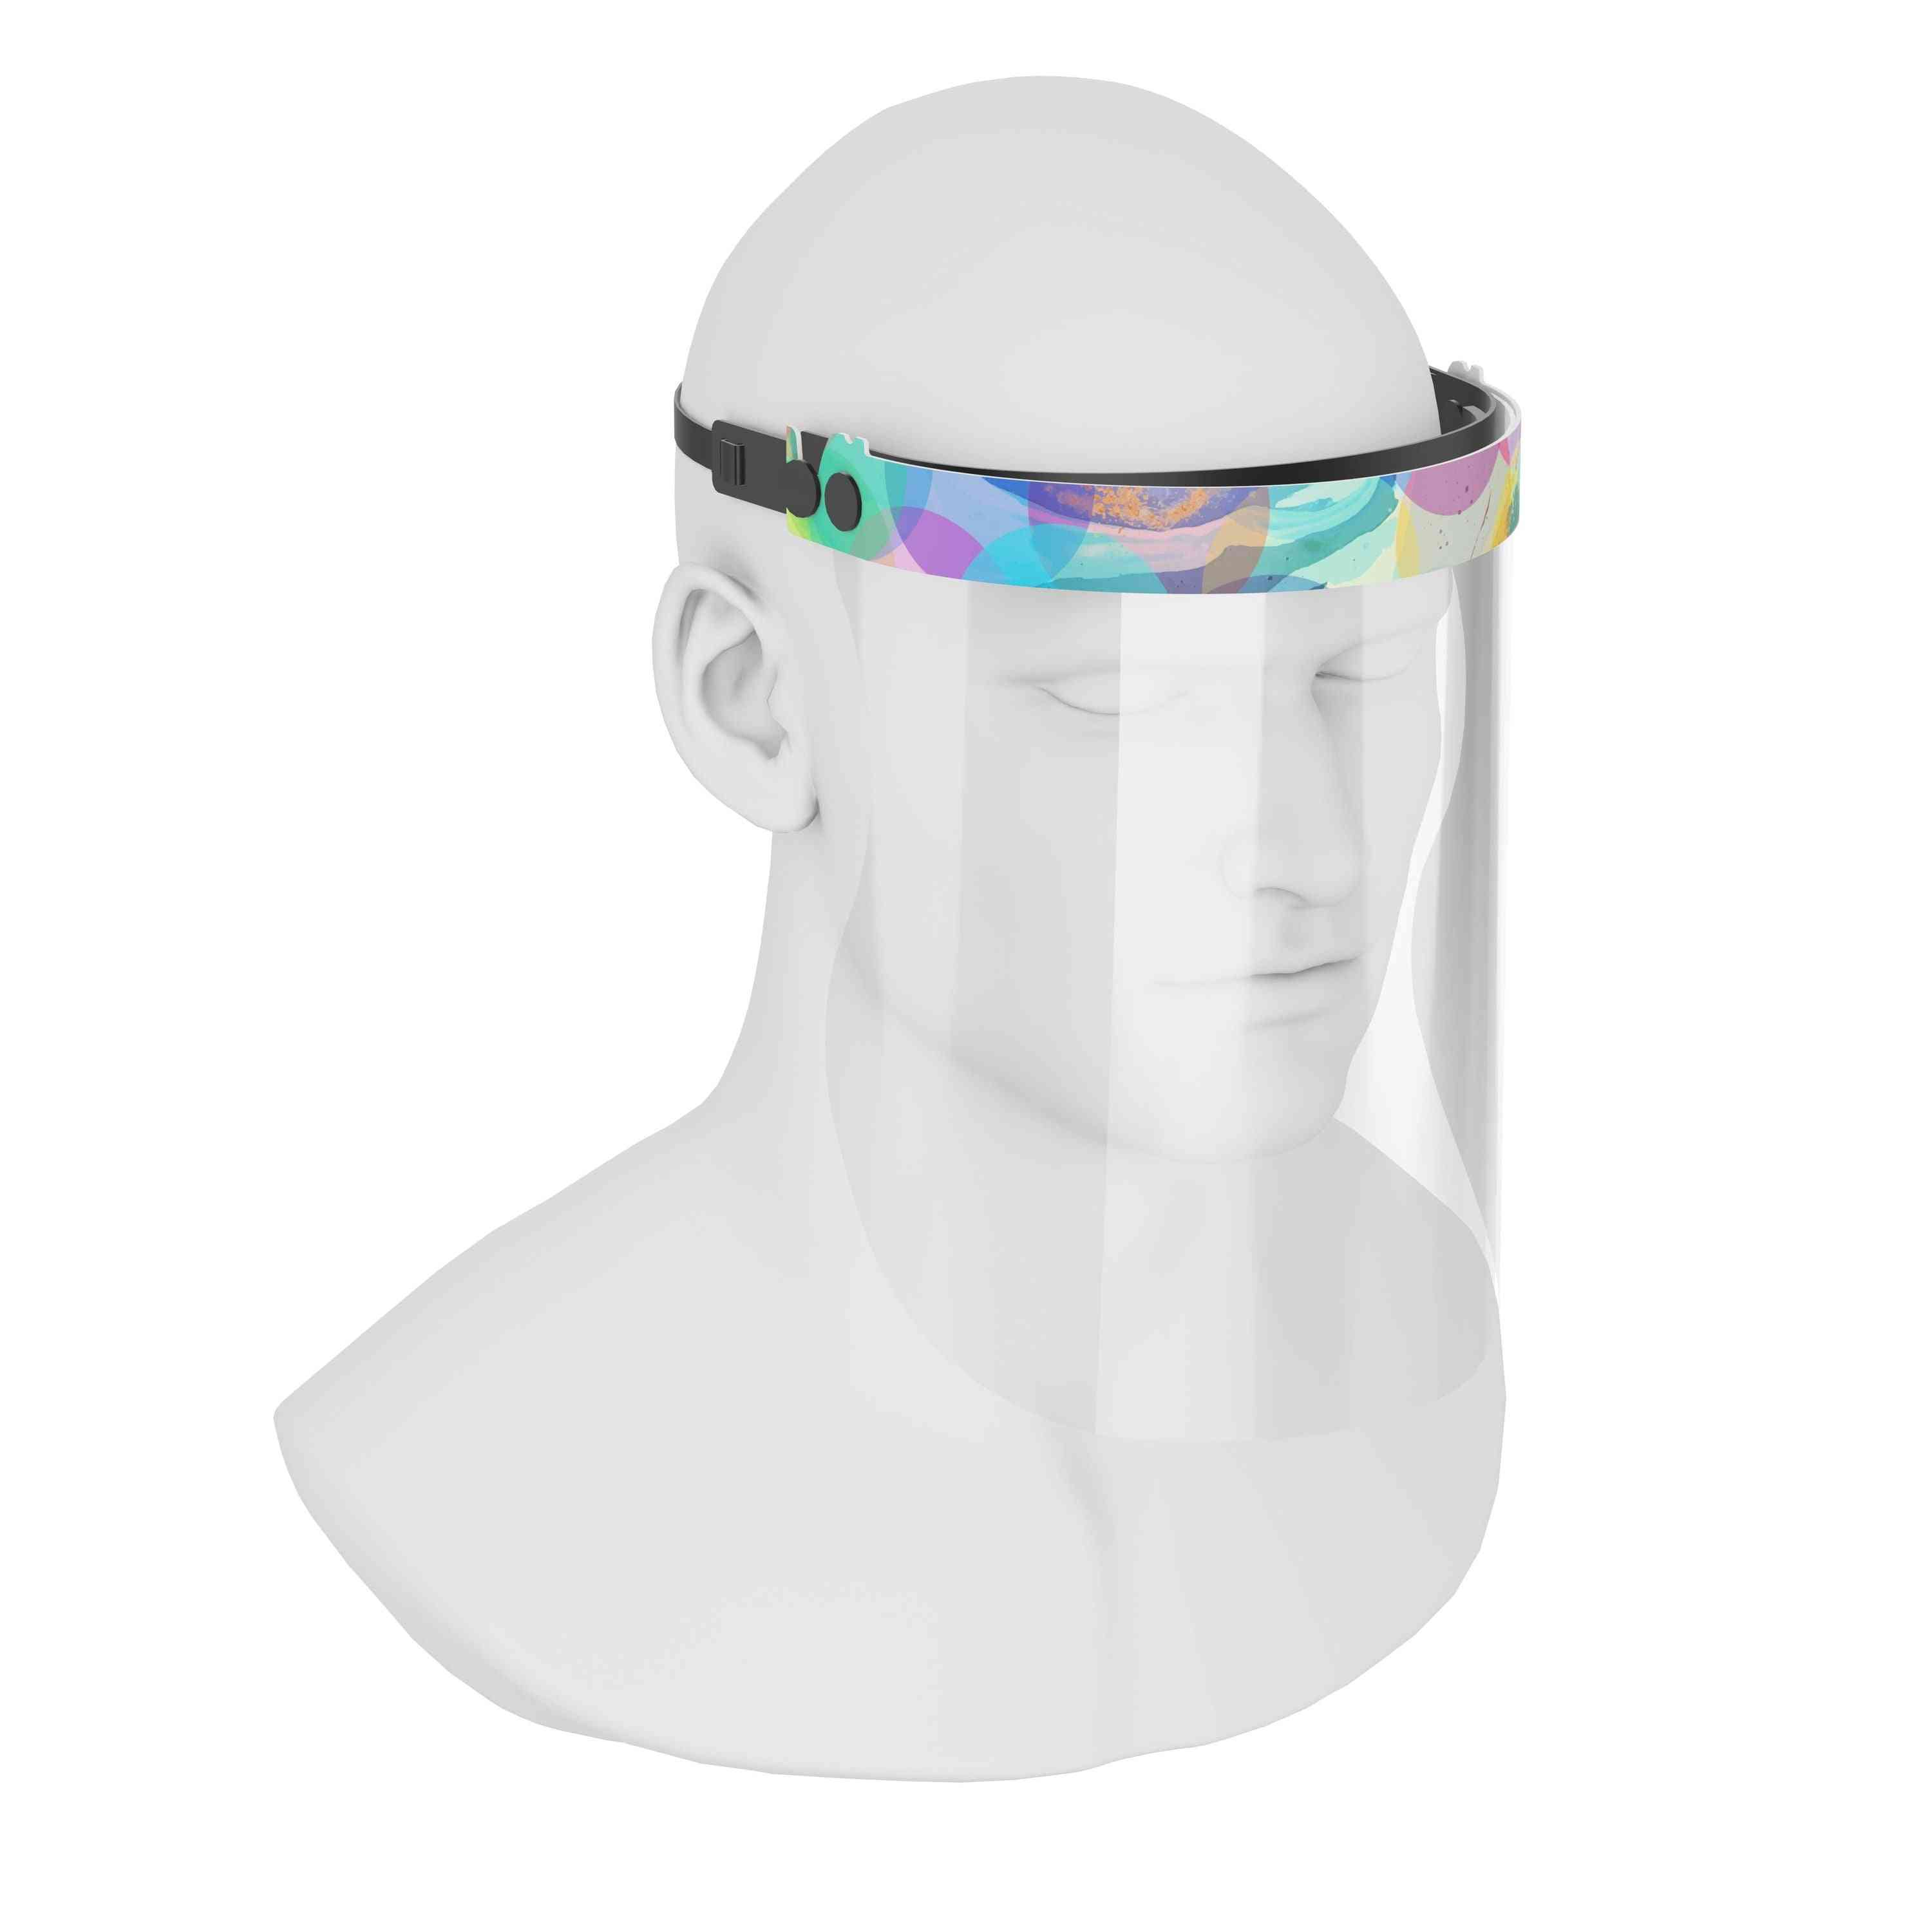 Isolay Face Shield Colourful